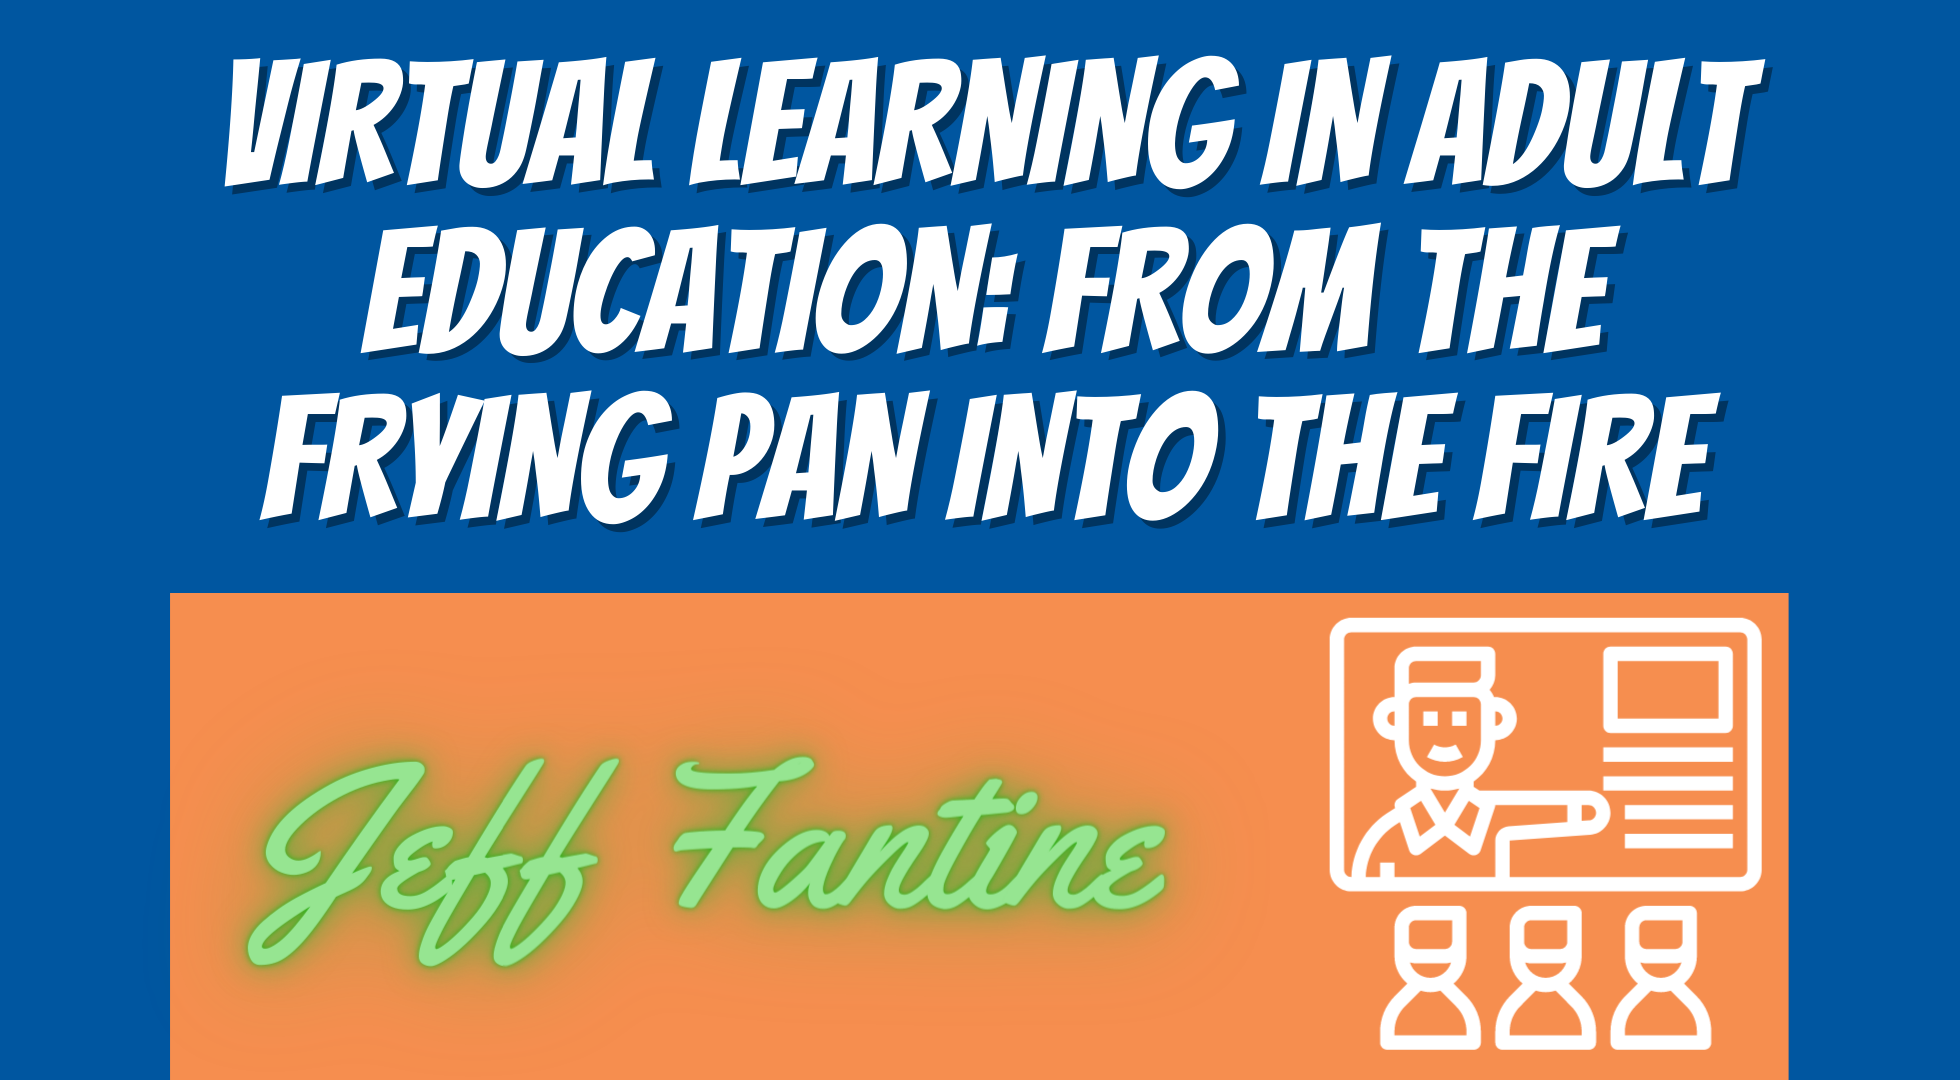 Virtual Learning in Adult Education: From the Frying Pan into the Fire